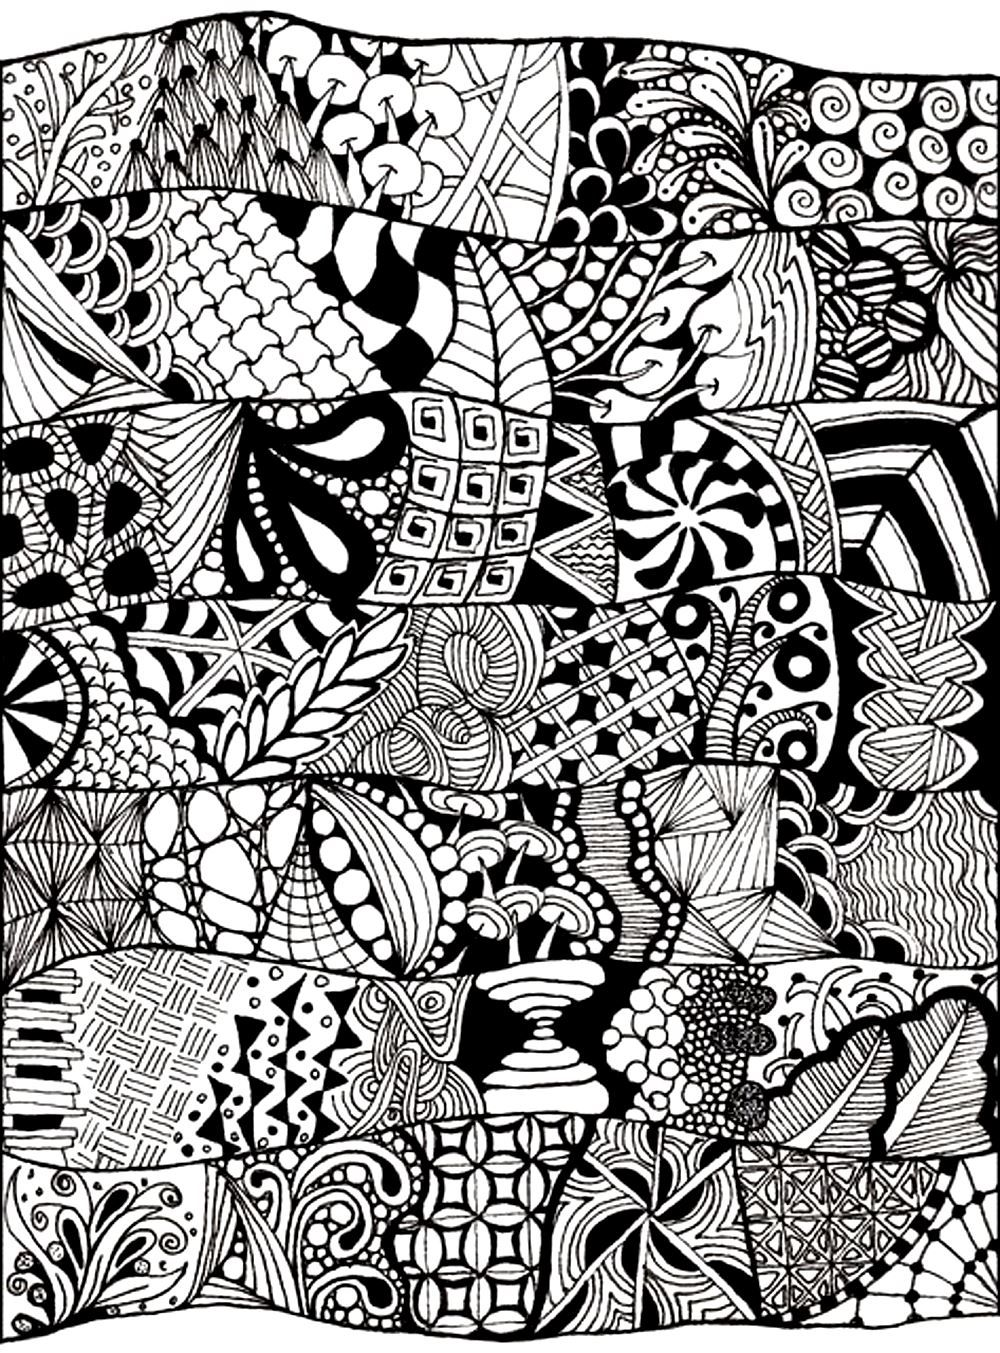 coloring-adult-zen-anti-stress-abstract-to-print, From the gallery ...